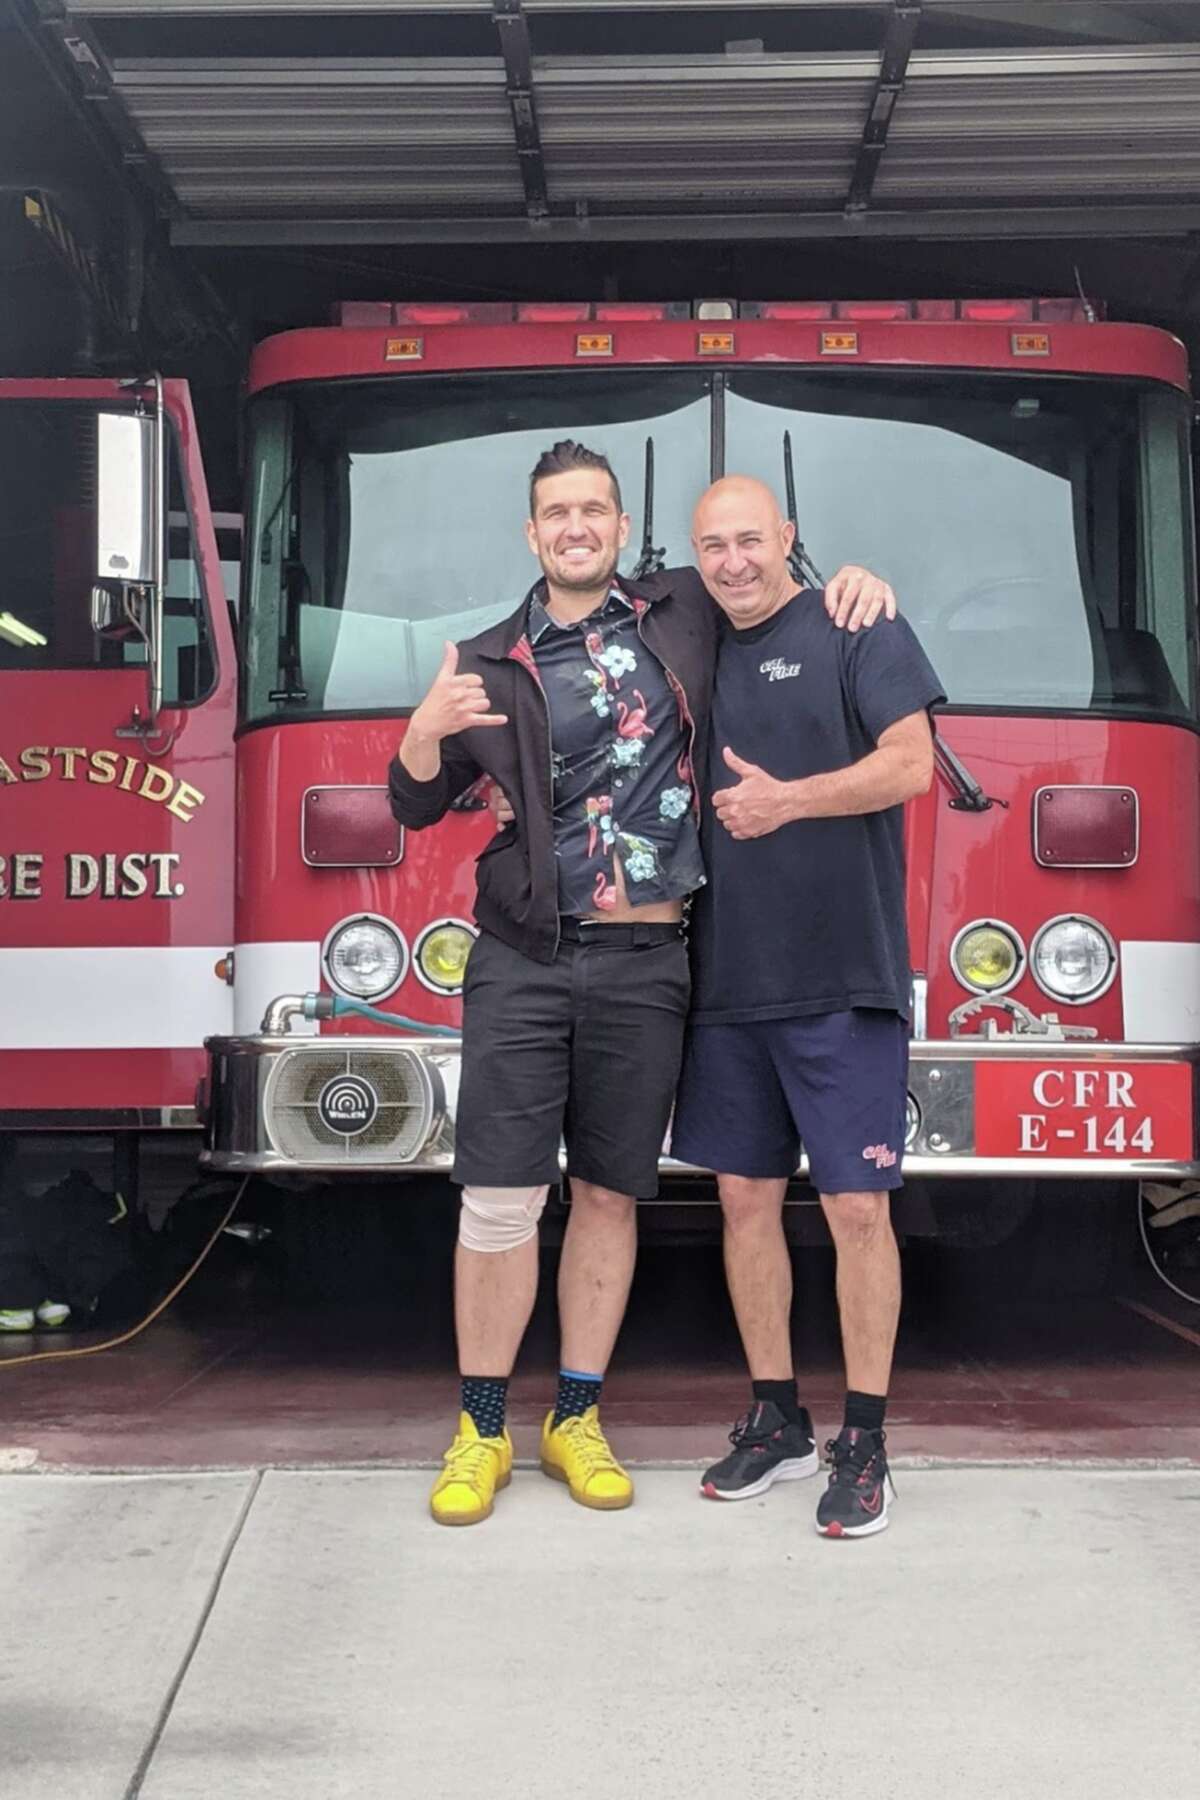 Nemanja Spasojevic, left, pictured a day after the shark encounter with Peter, who was the paramedic in charge from Montara Firestation 44.